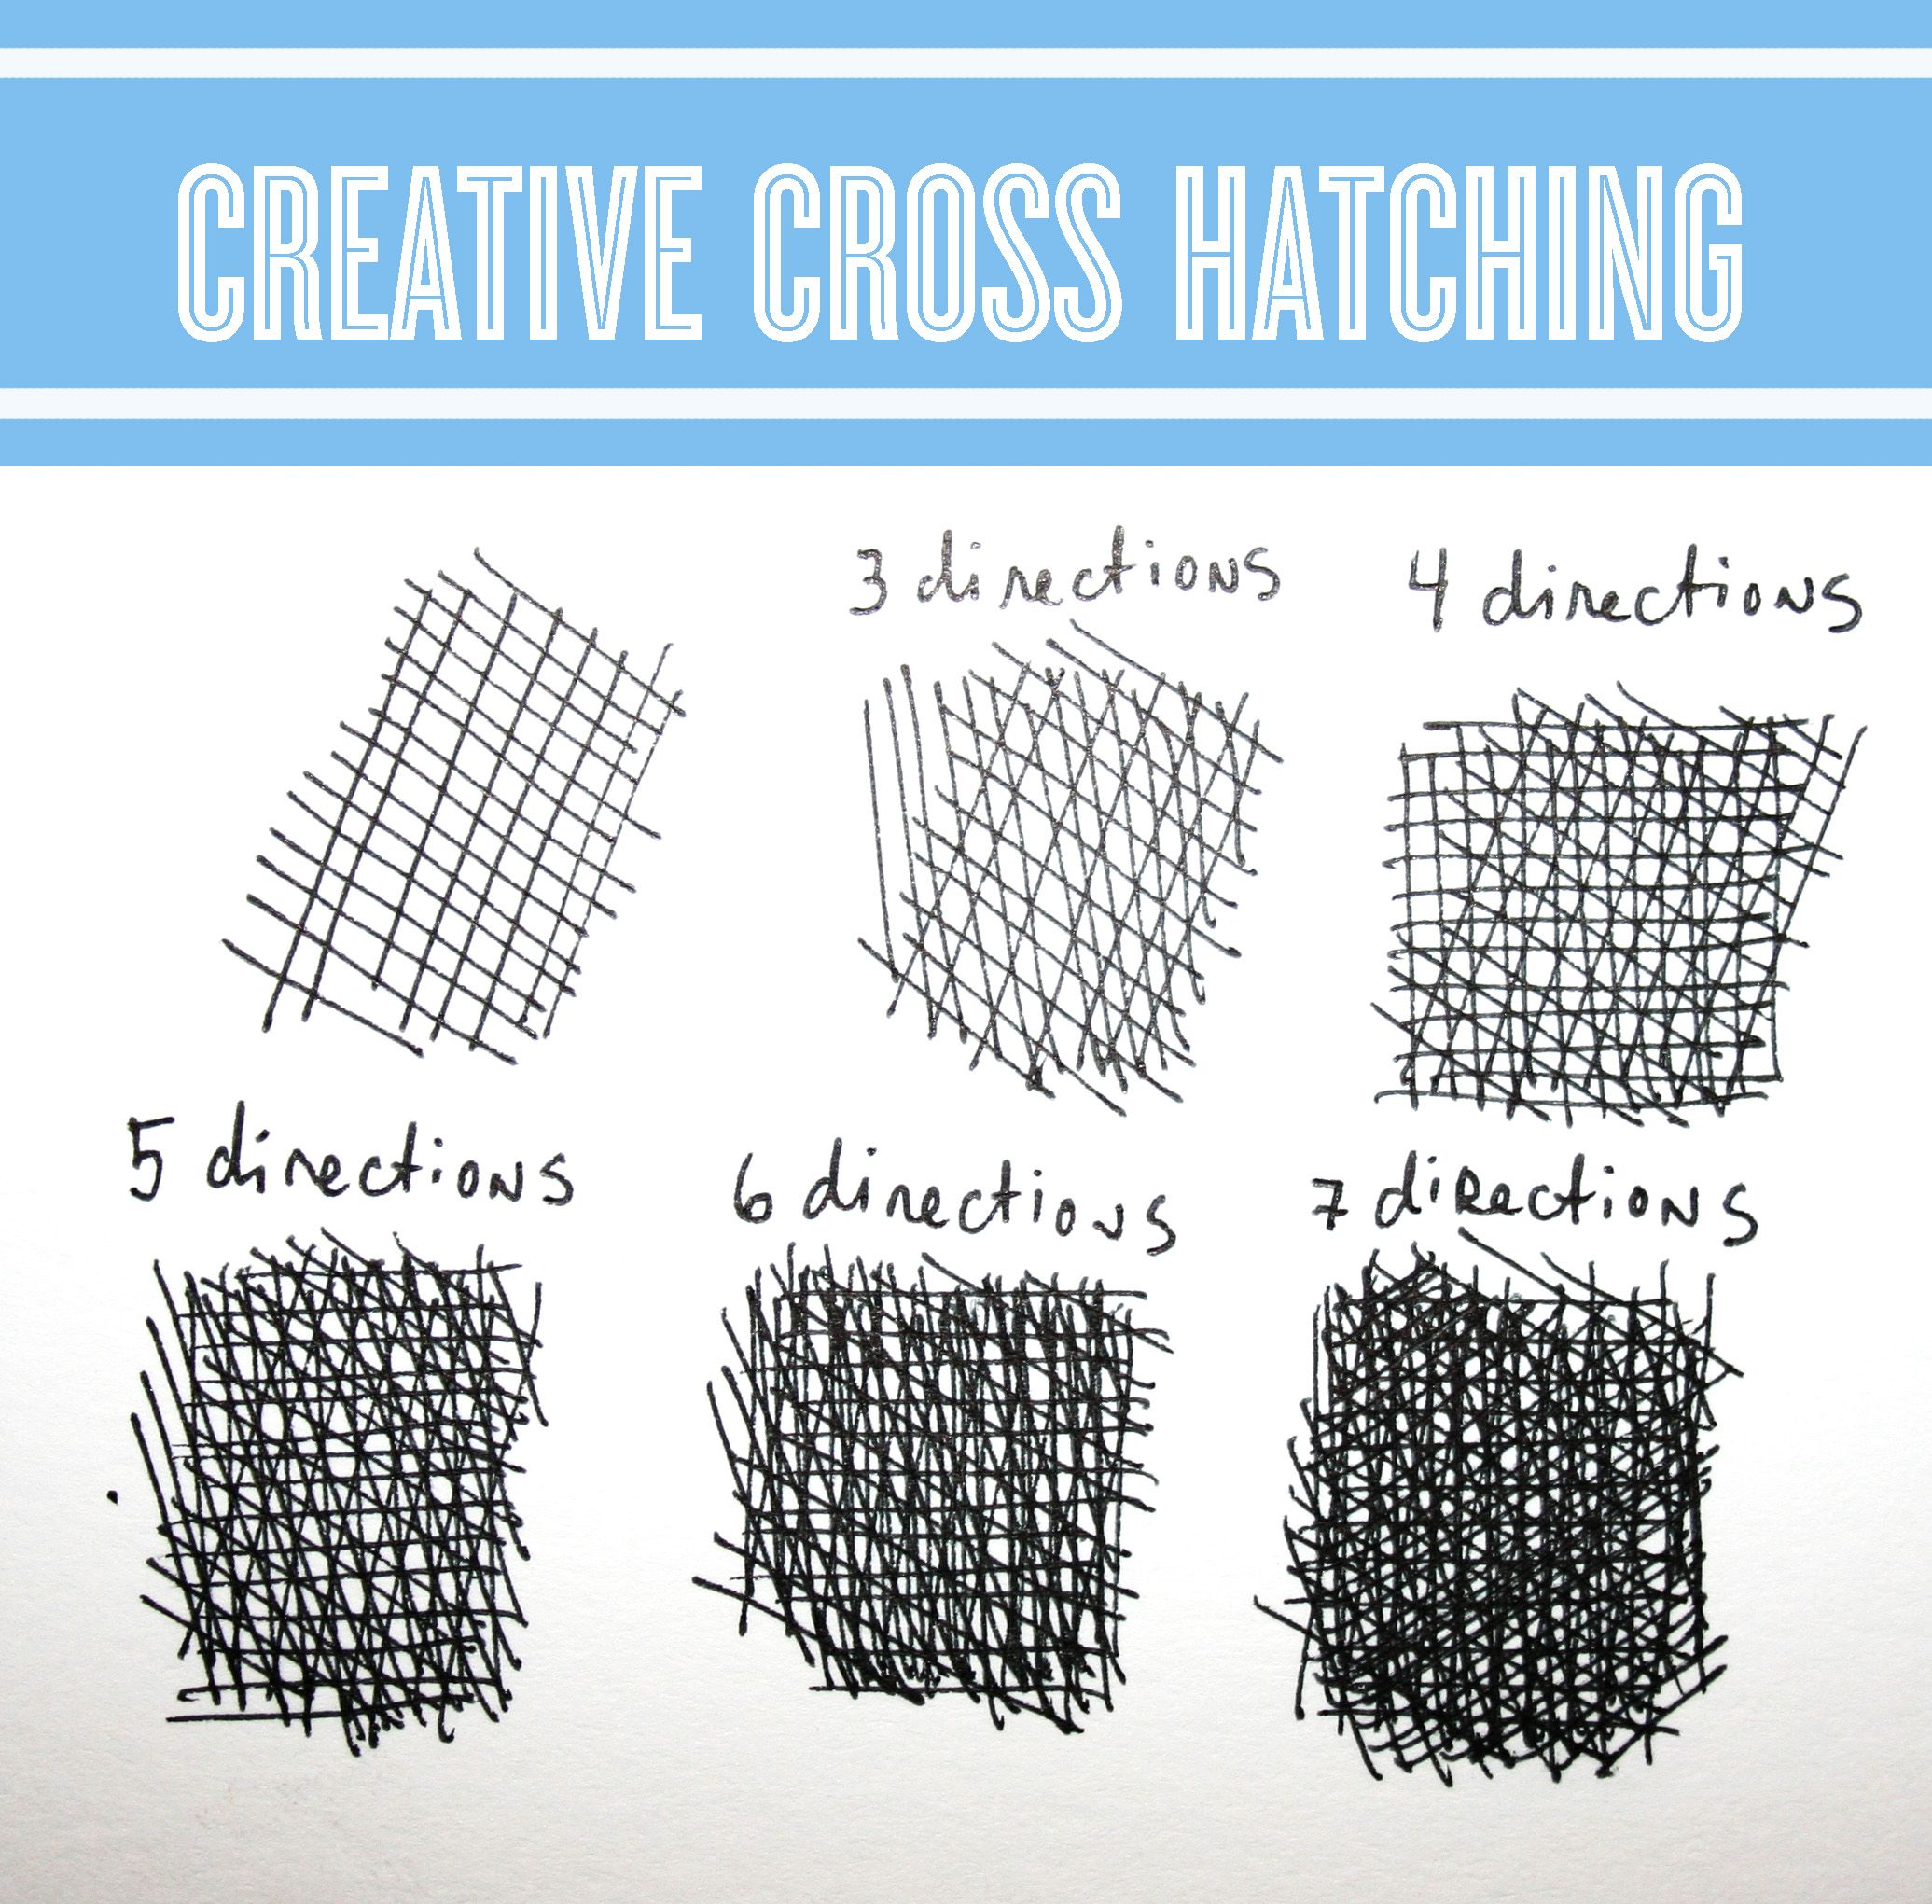 Drawing Workshop Creative Cross Hatching Techniques